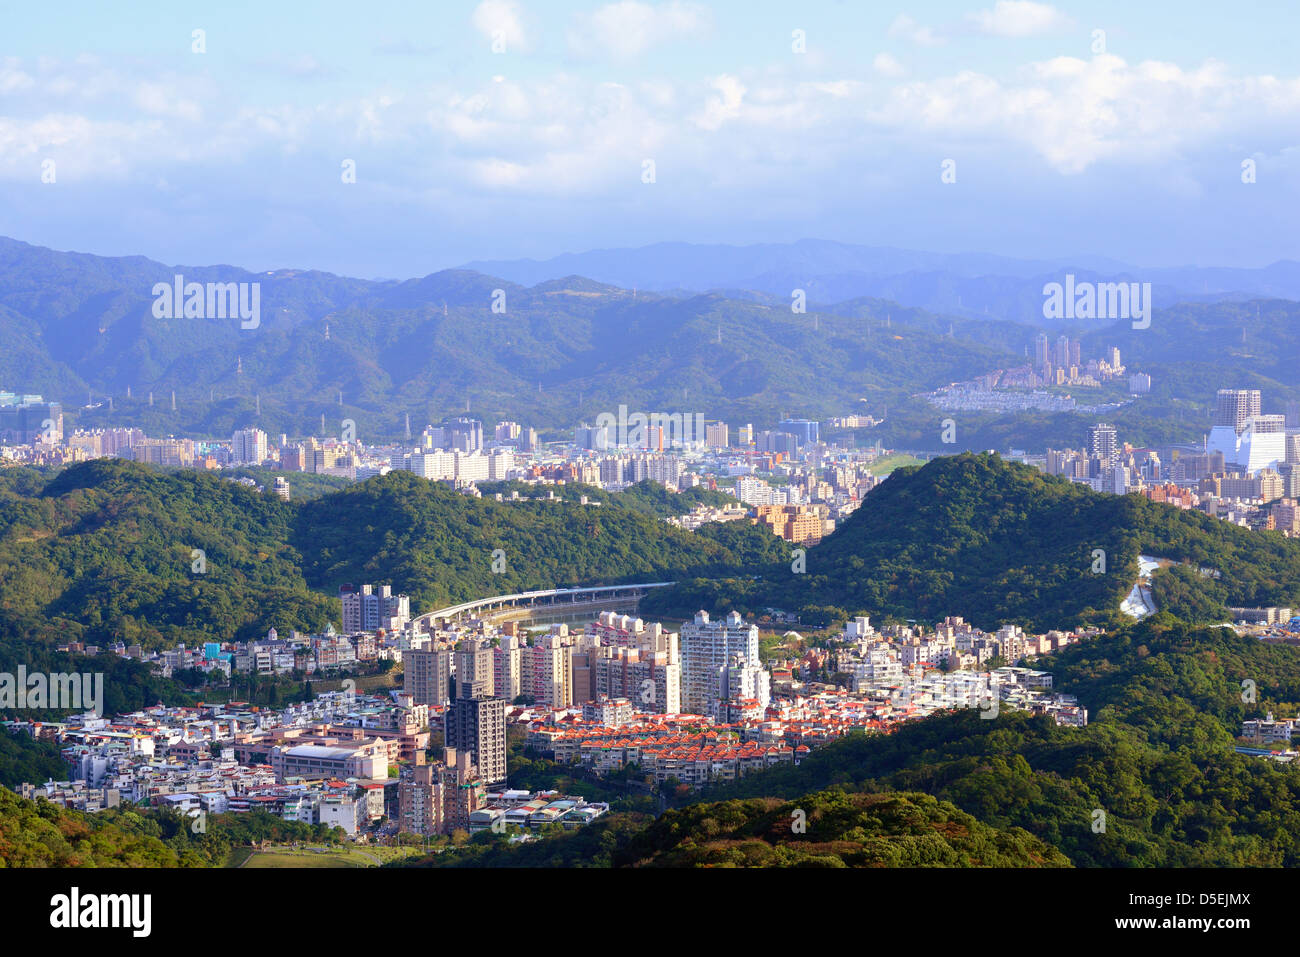 Residential high rises and apartment buildings in Neihu District, Taipei, Taiwan. - Stock Image